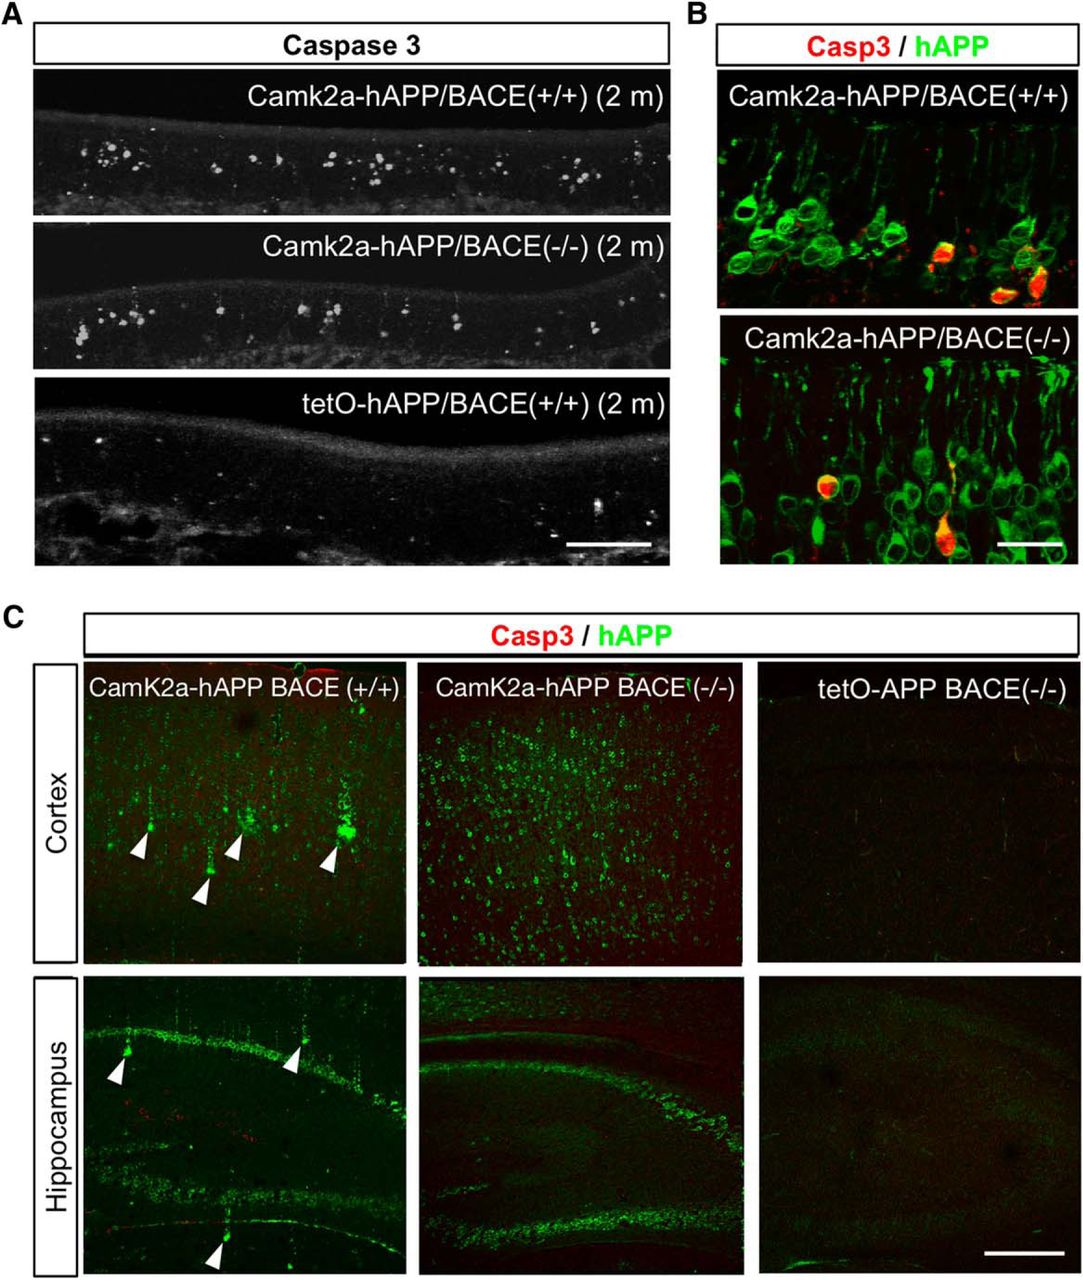 APP Overexpression Causes Aβ-Independent Neuronal Death